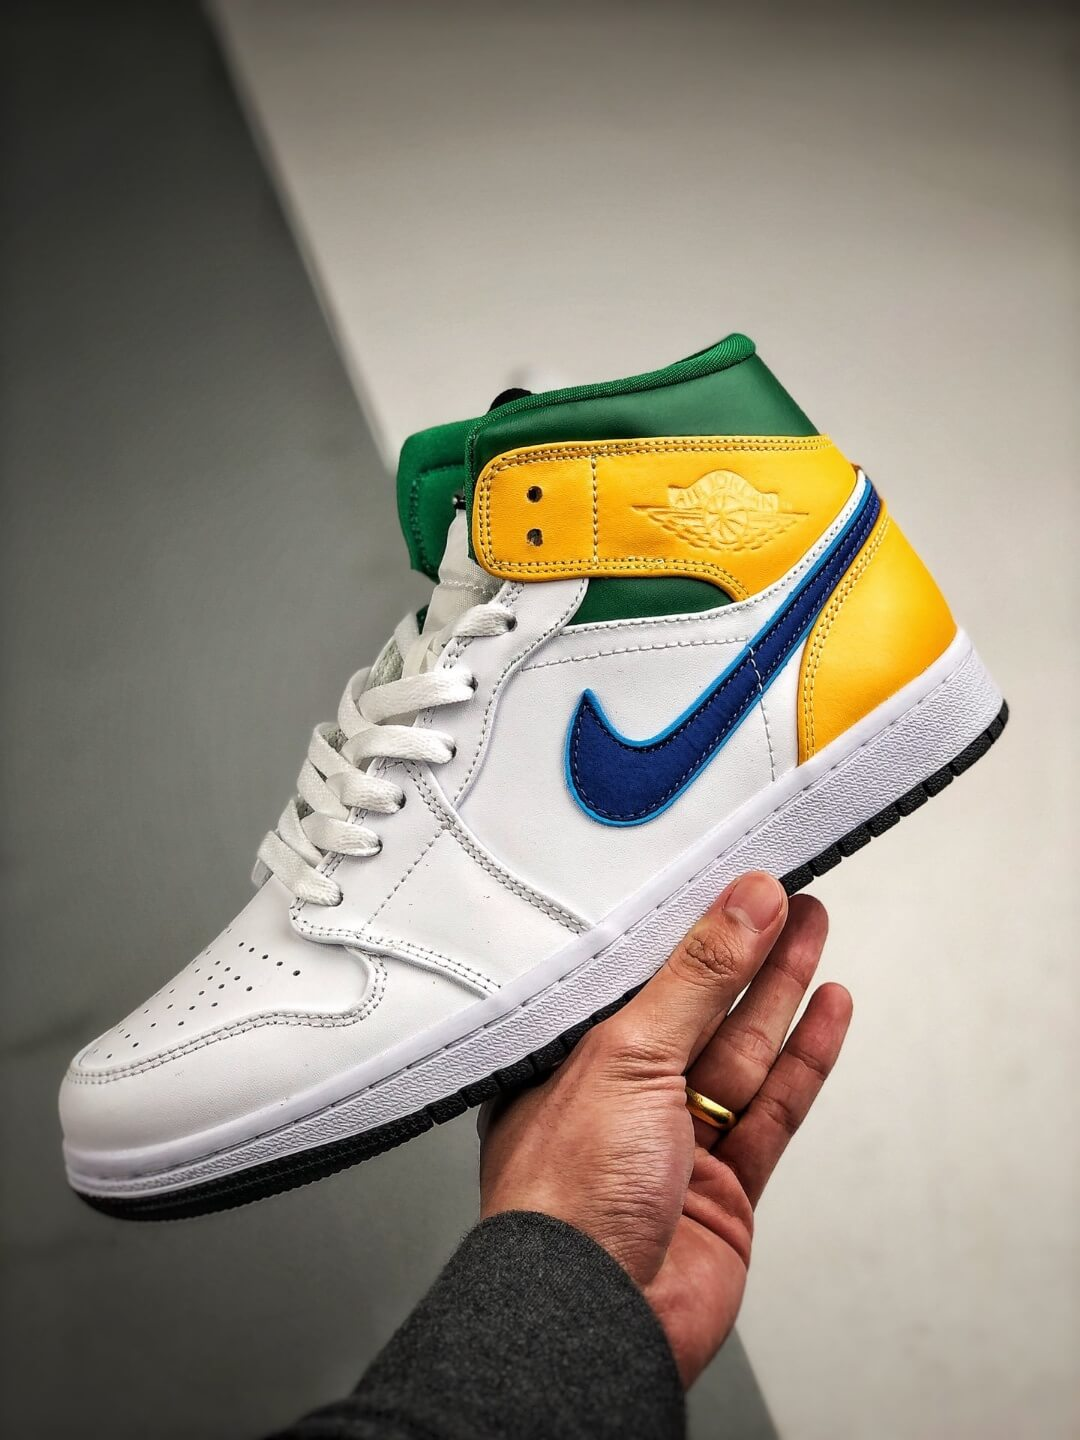 The Air Jordan 1 Mid GS White Court Purple Teal Repsneaker White Leather Upper Green Collar and Yellow Overlay 04